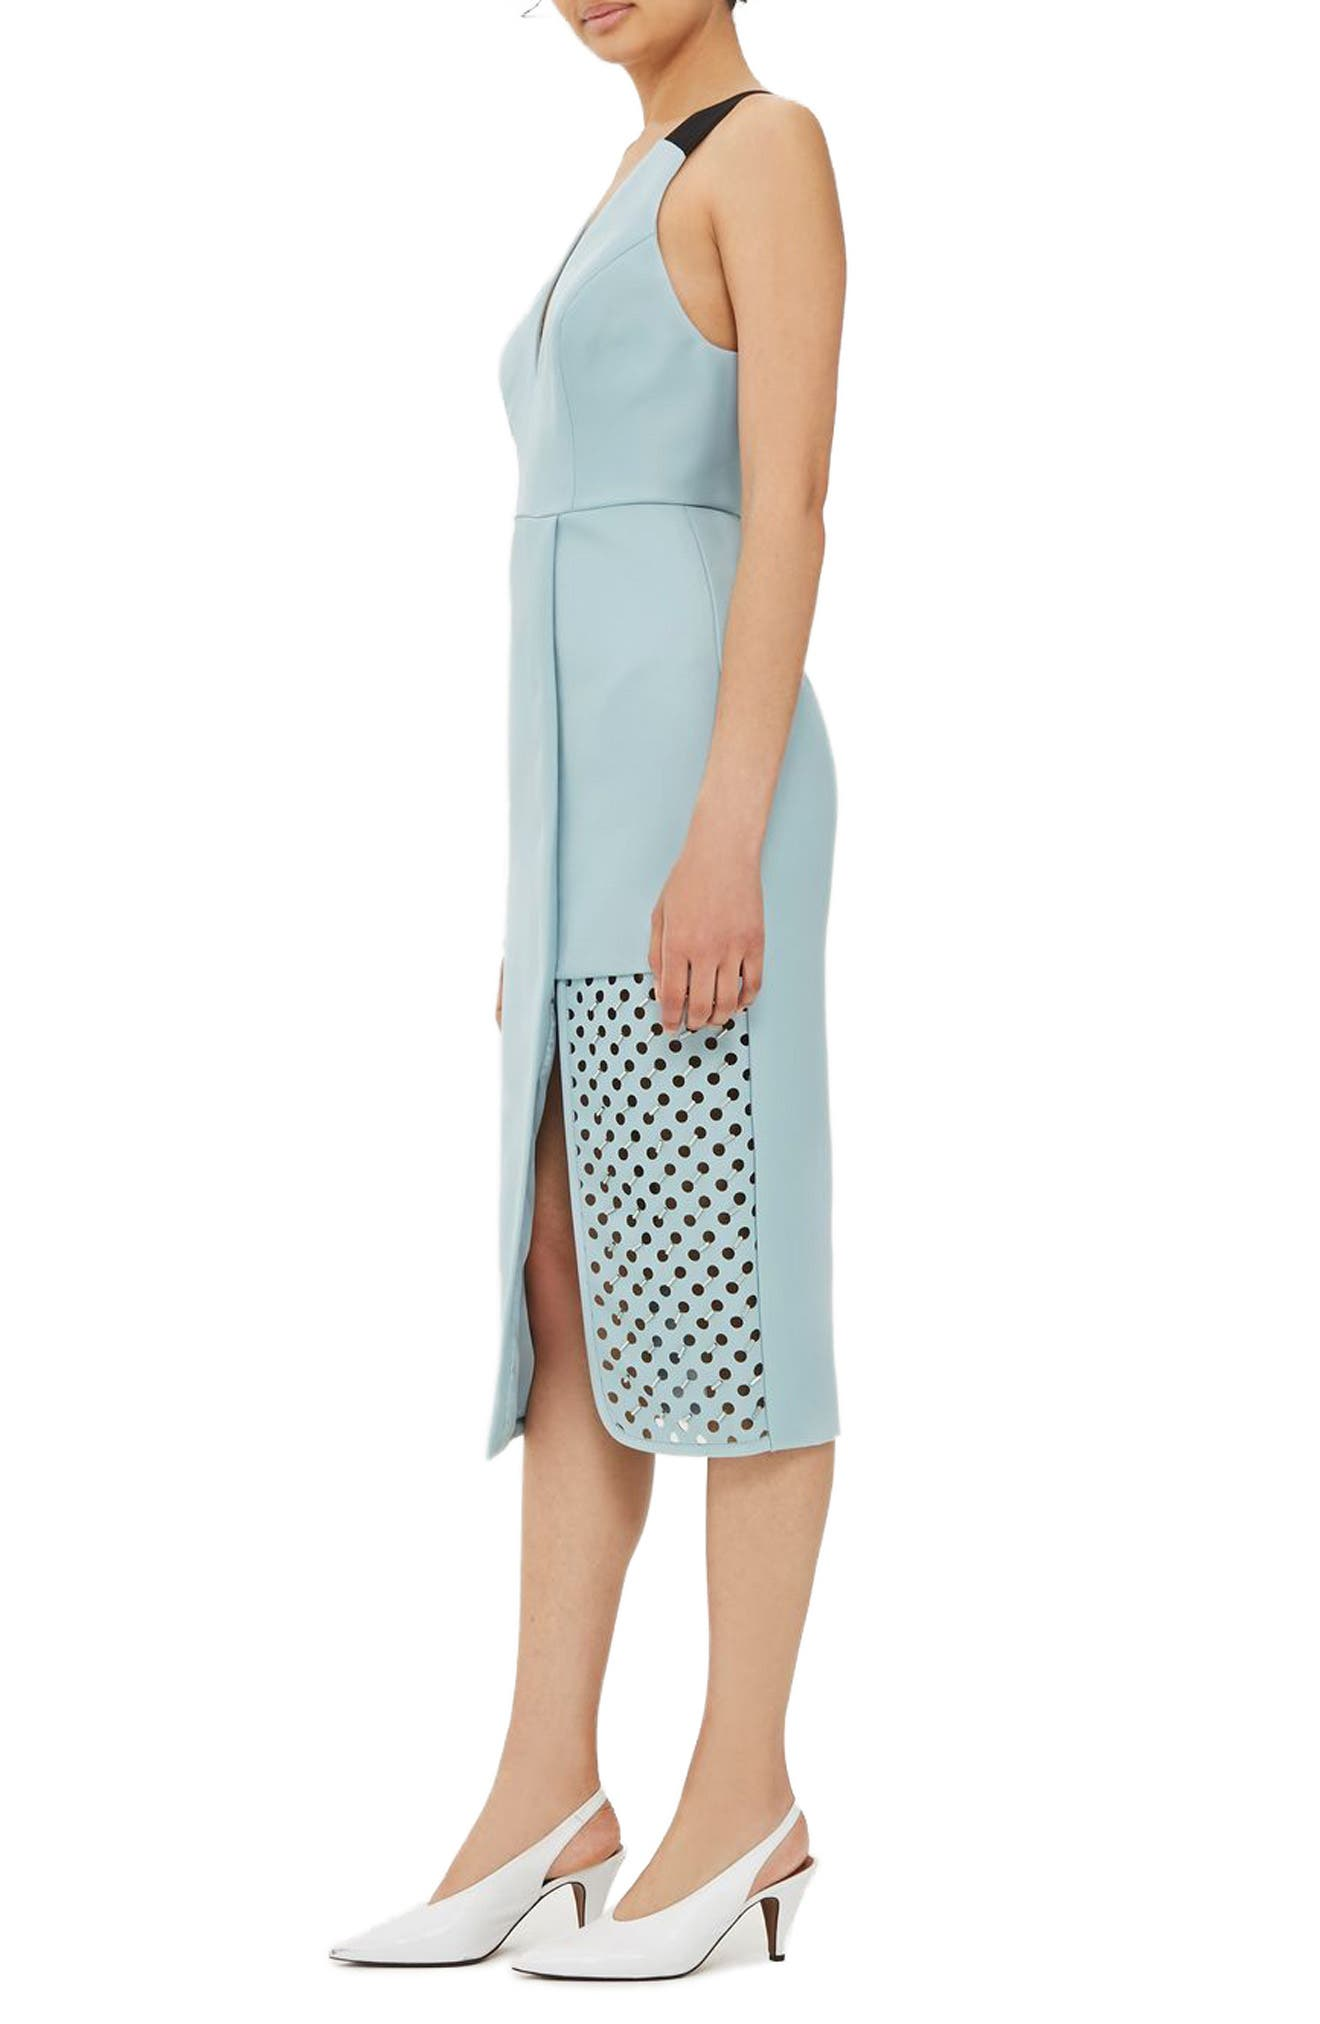 Topshop Embellished Perforated Panel Sheath Dress